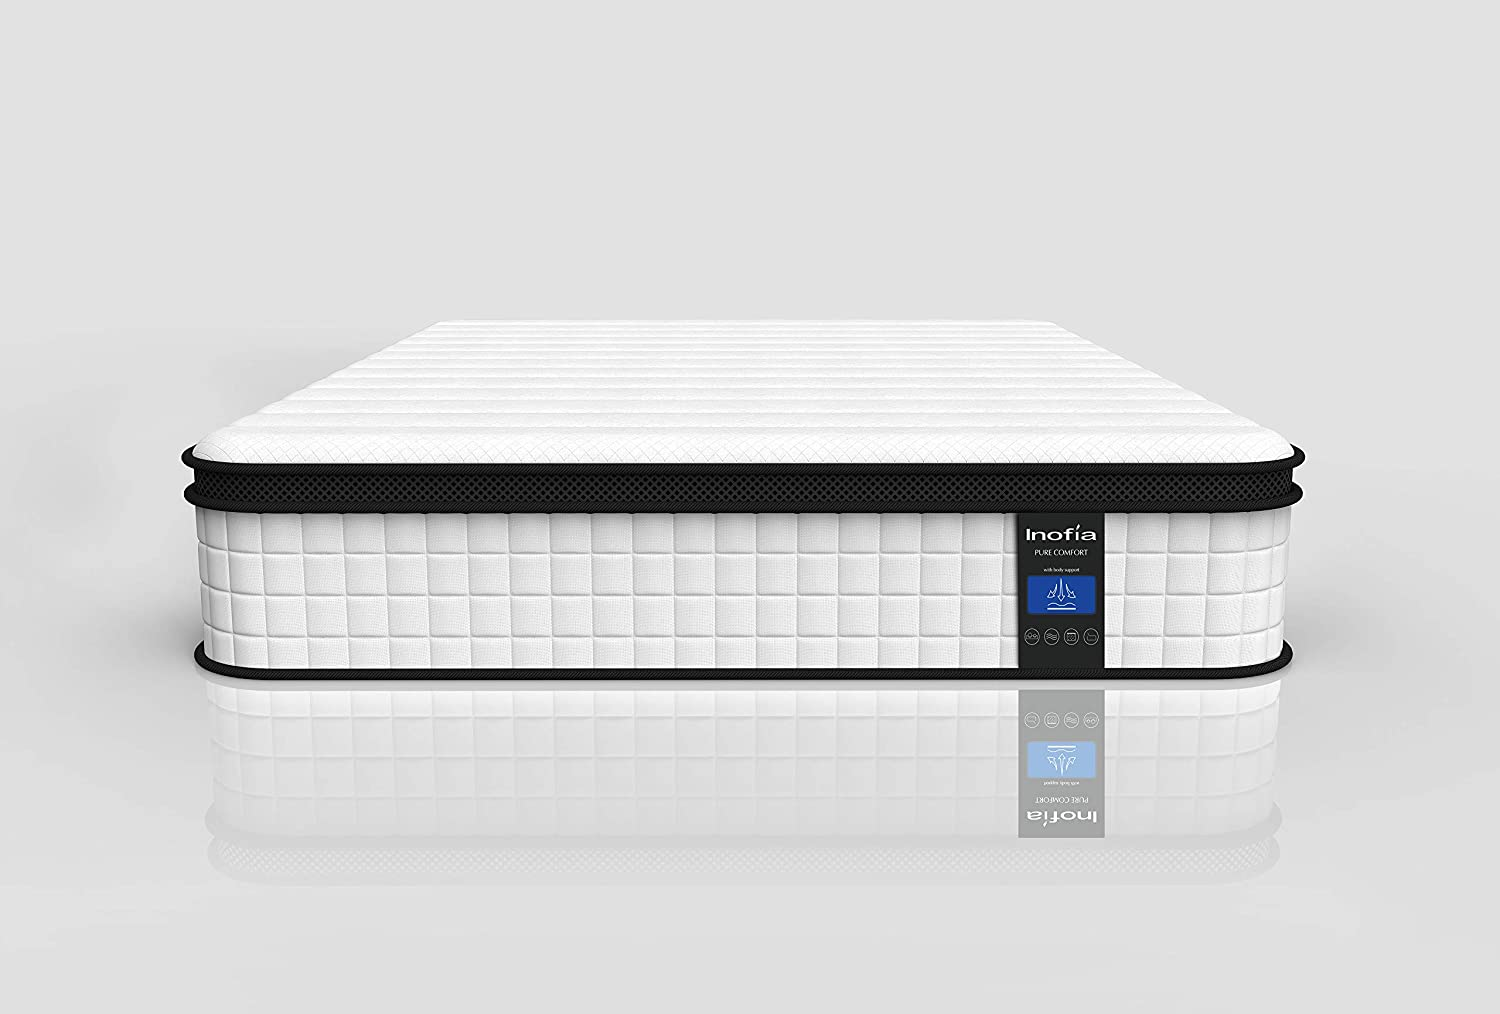 90x190x27cm Inofia Single Memory Foam Sprung Mattress 10.6 Inch,3FT Spring Mattress with Innovative Wave Memory Foam and Soft Knitted Fabric,The Elegant Collection,Risk-free100 Night Trial